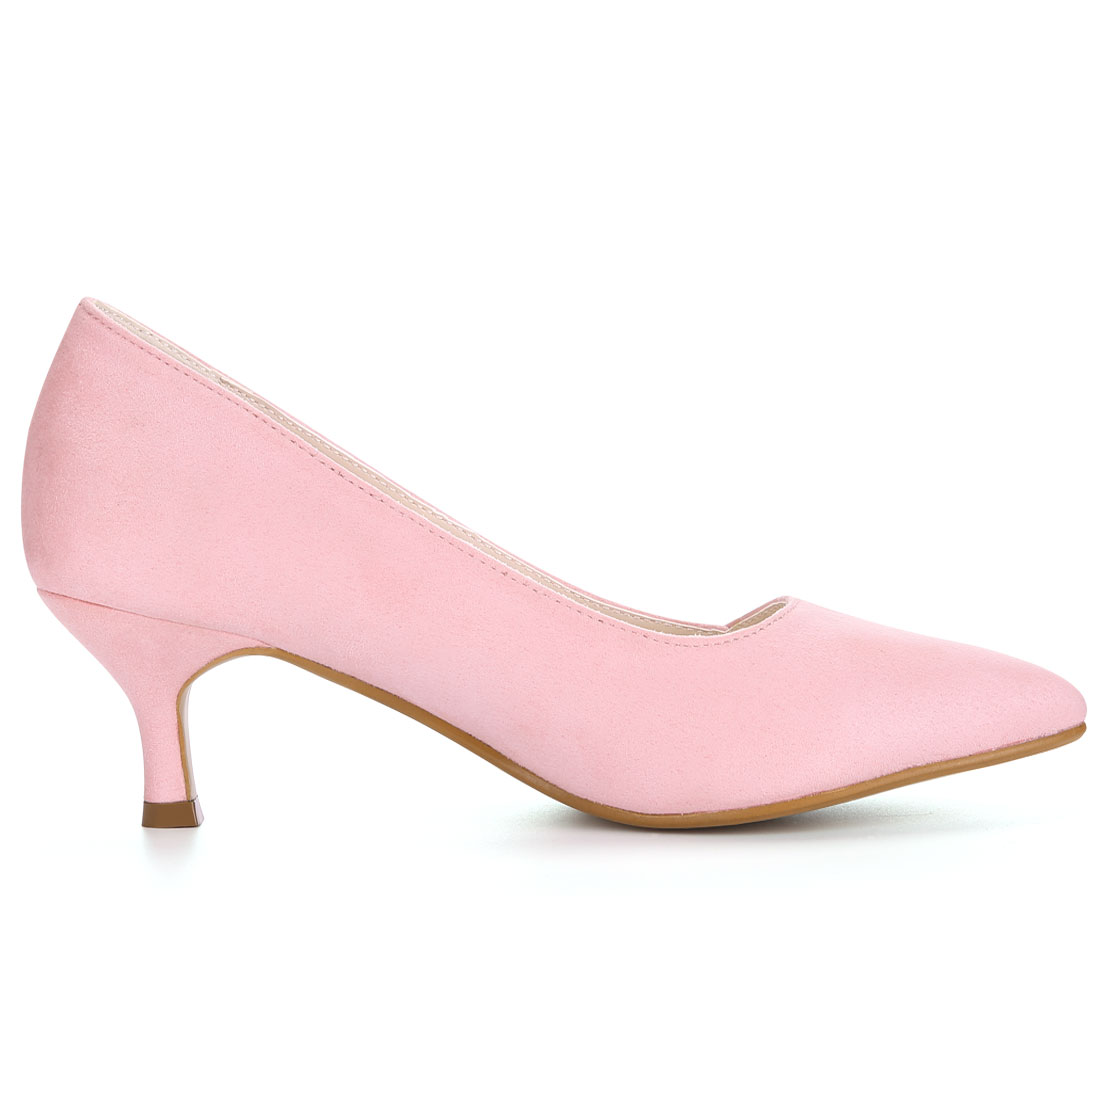 HF-27 Women Pointed Toe Mid Stiletto Heel Pumps Pink/US 9.5 - image 4 of 7